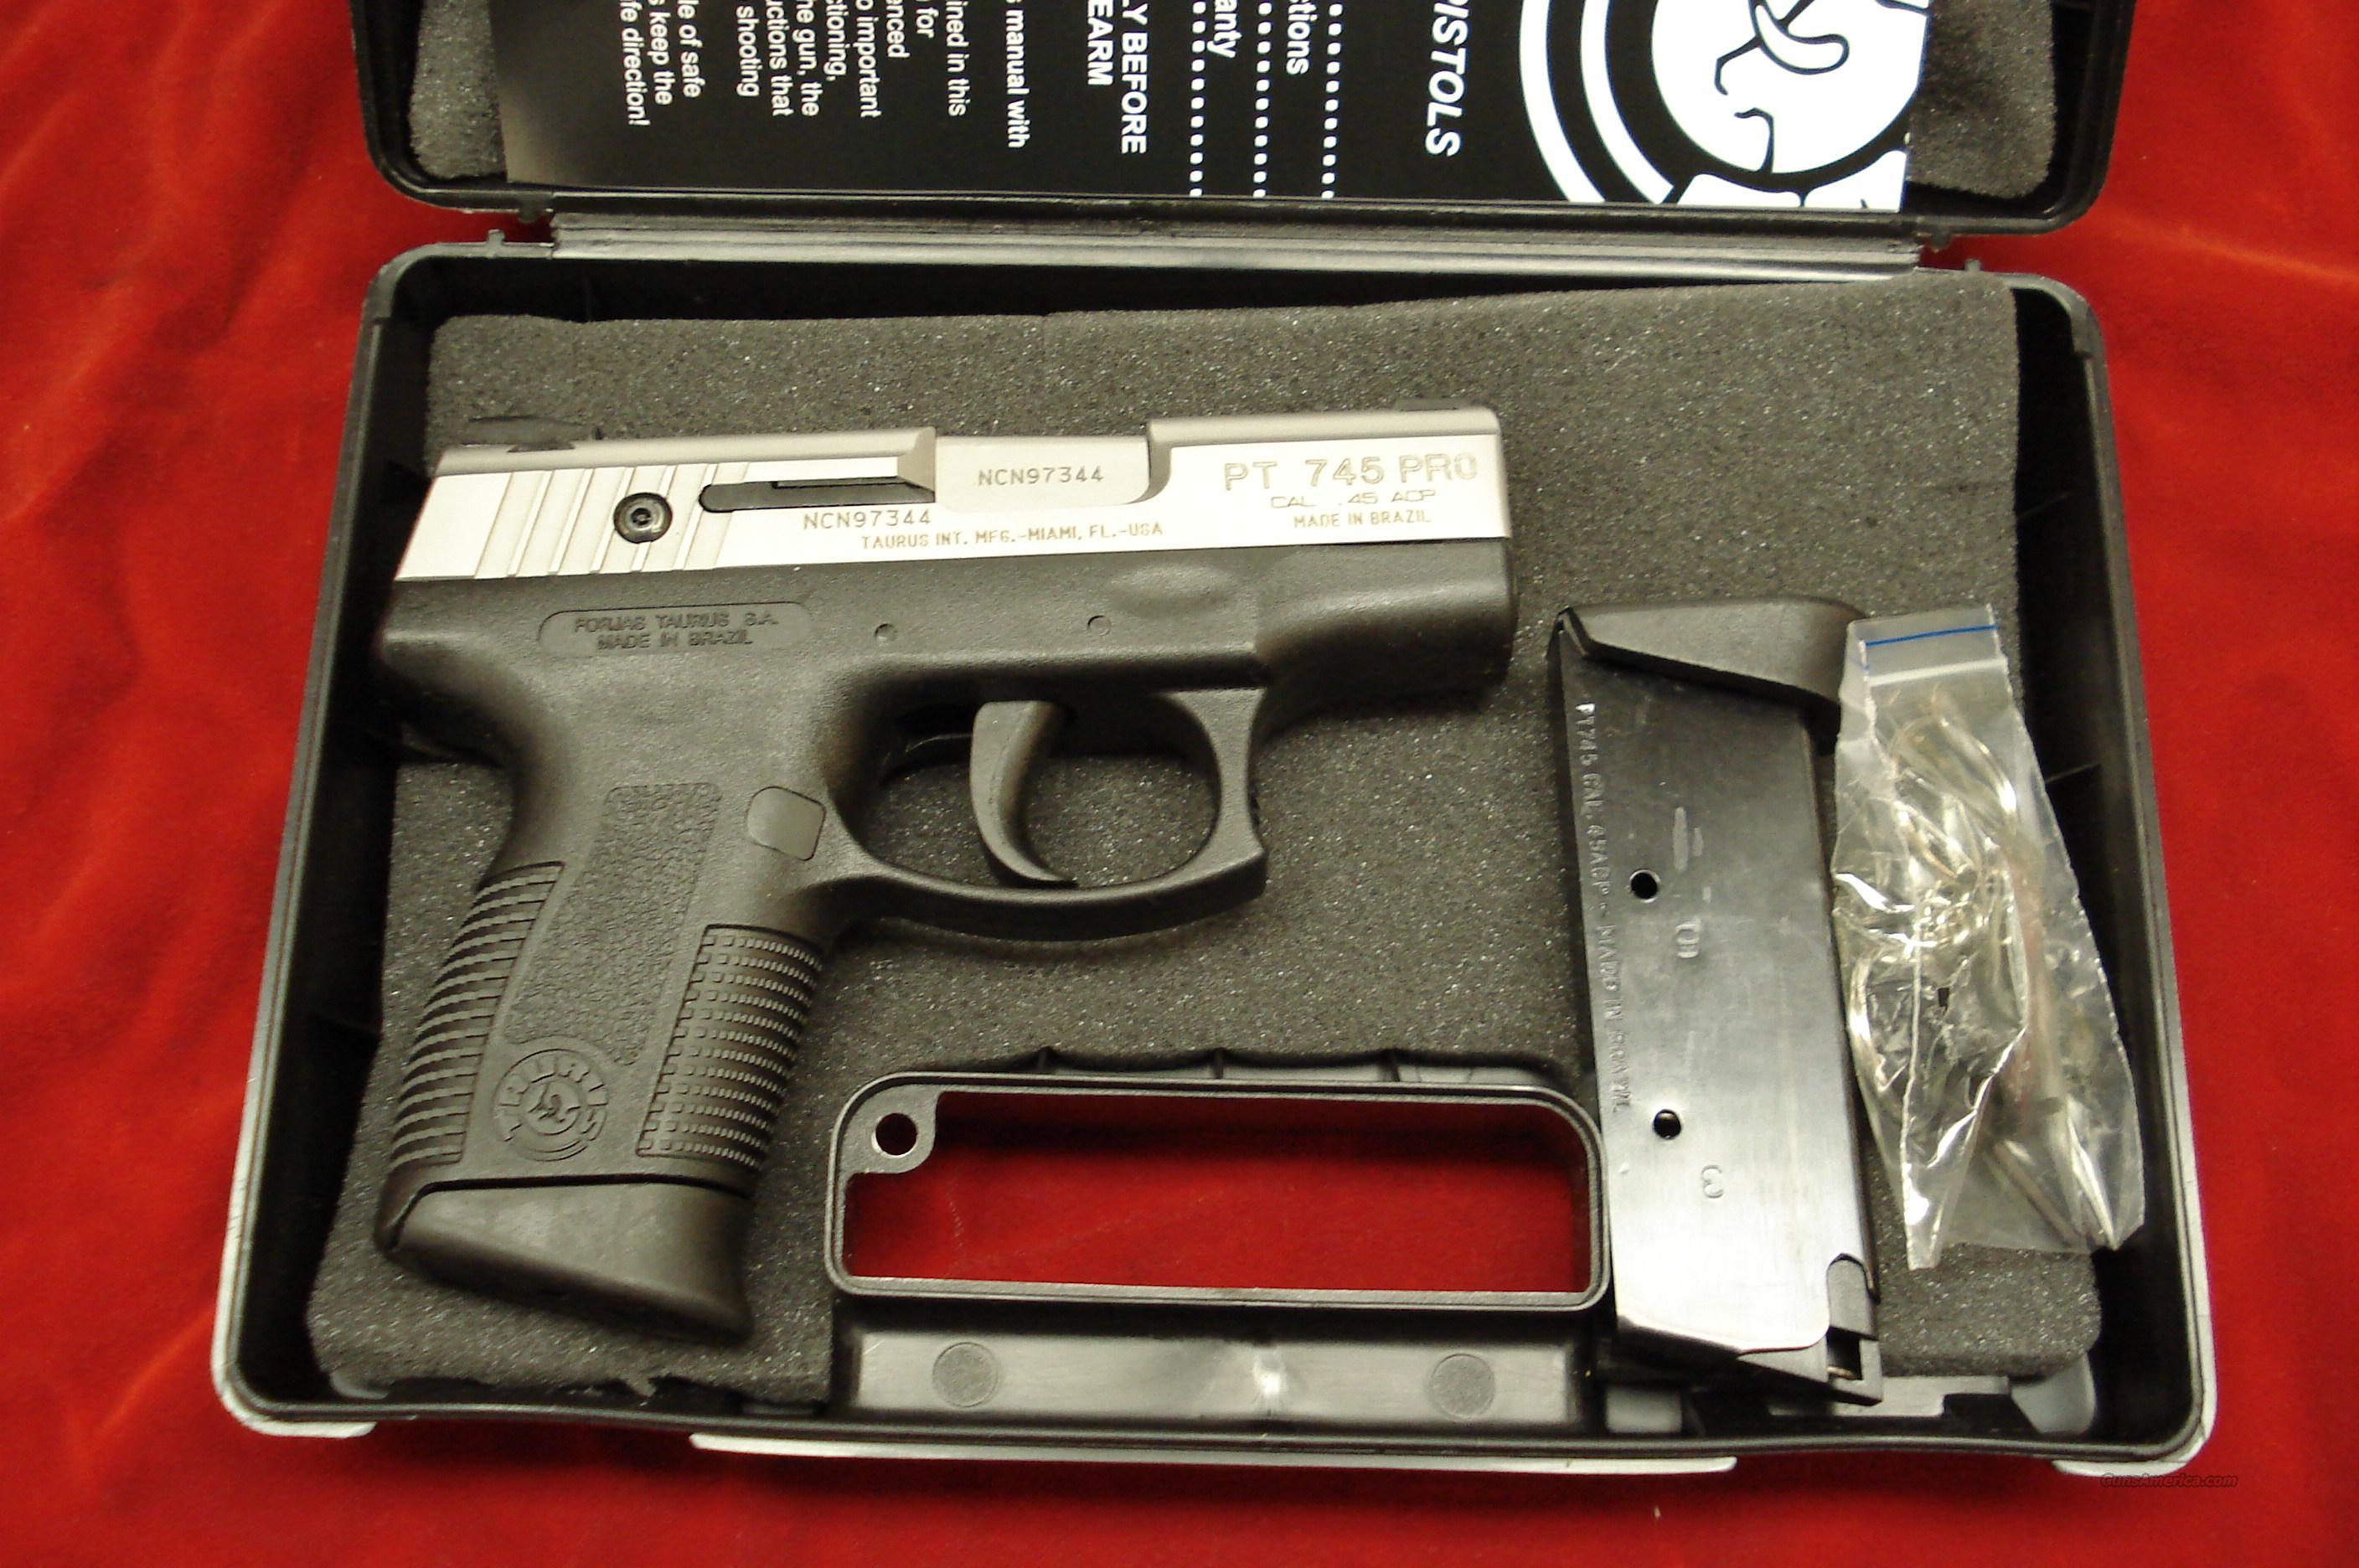 TAURUS PT745 STAINLESS MILLENNIUM PRO 45ACP NEW   Guns > Pistols > Taurus Pistols/Revolvers > Pistols > Polymer Frame